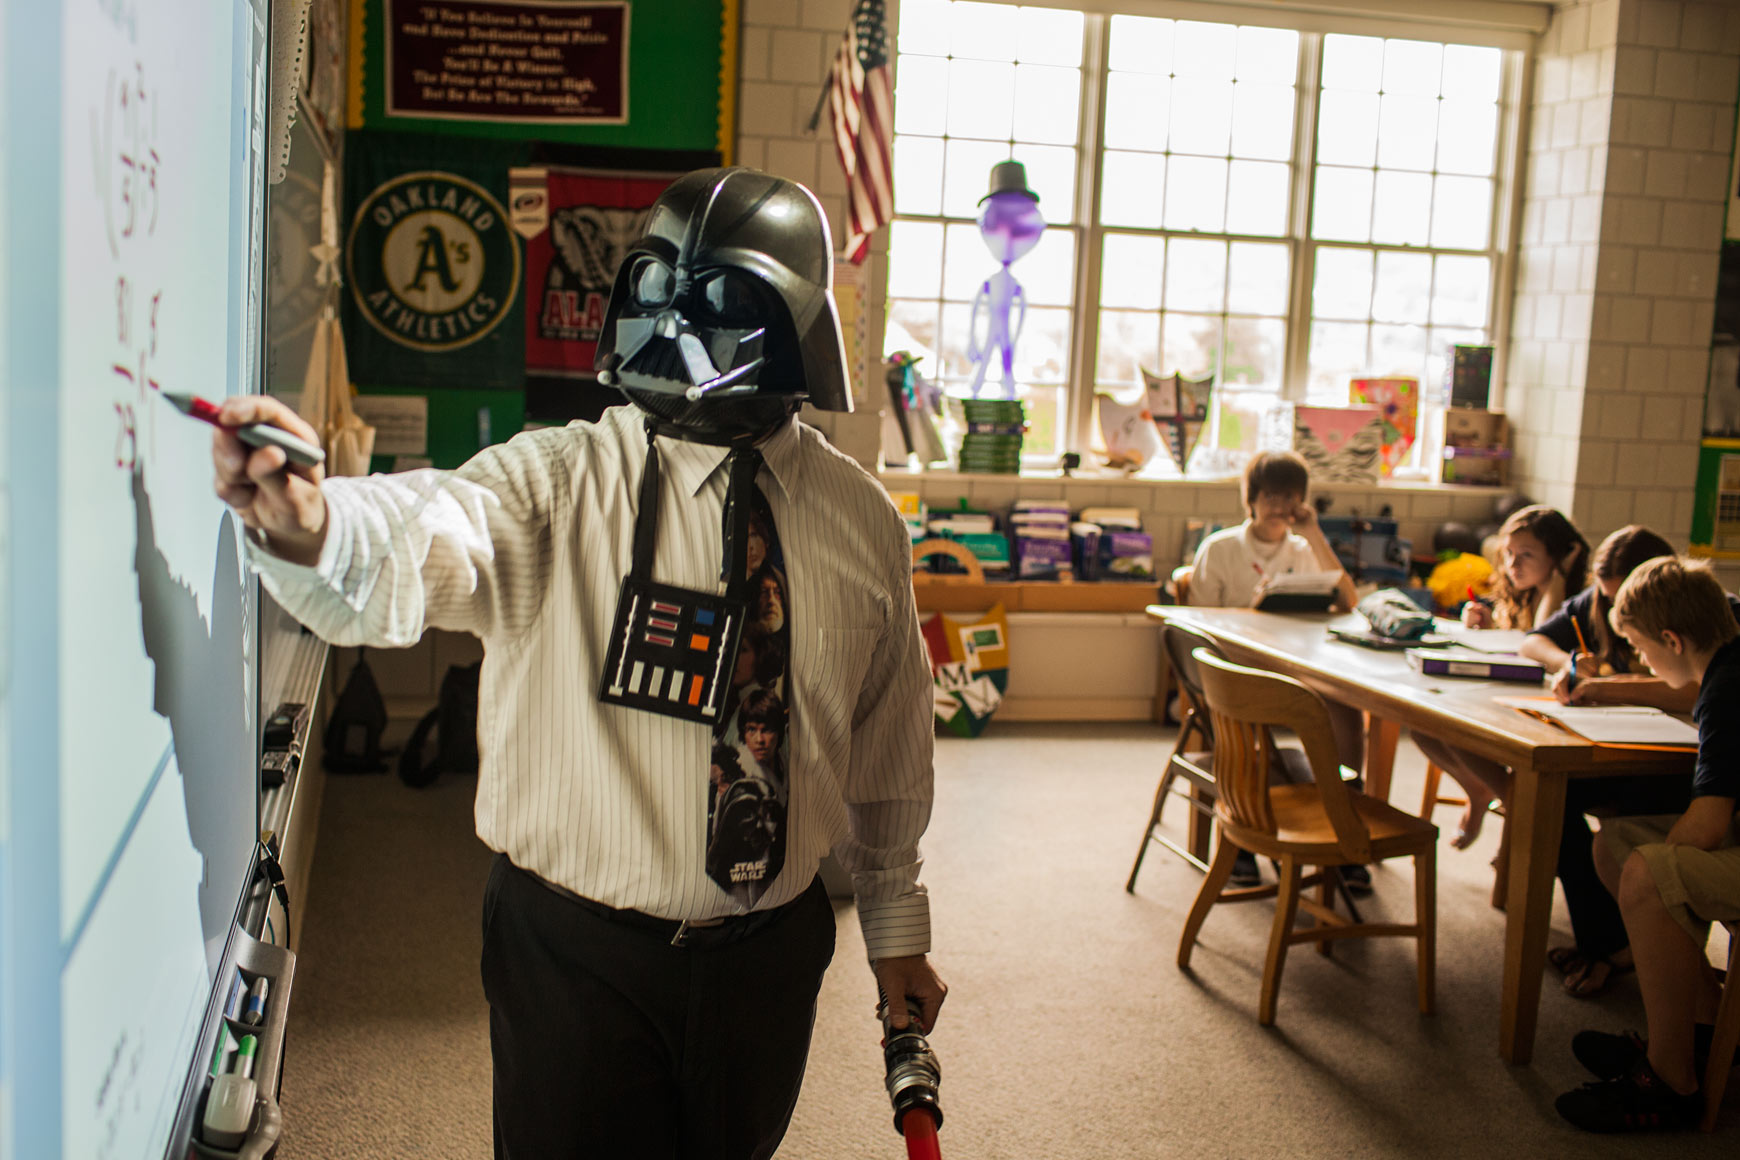 darth vader teaches math to middle school students